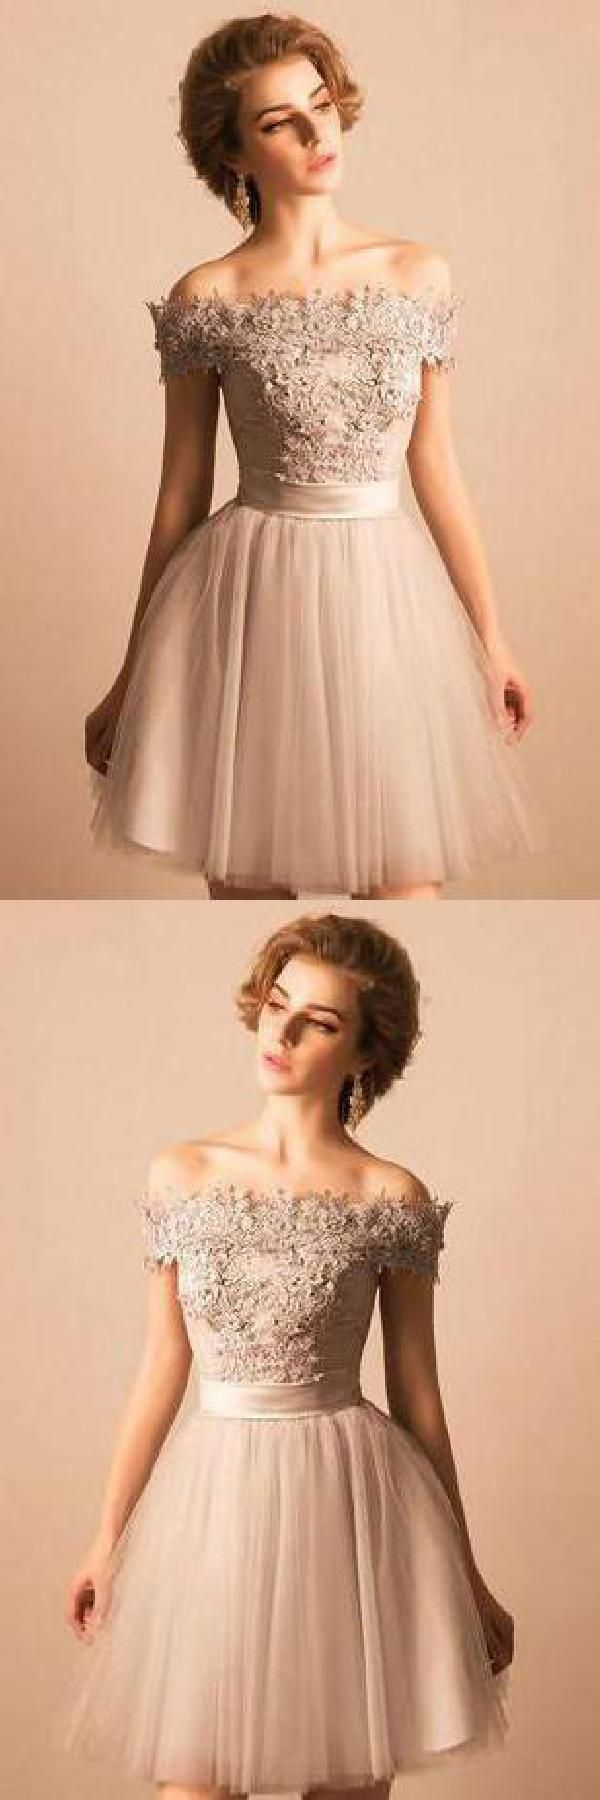 Ivory prom dresses homecoming dresses short homecoming dress